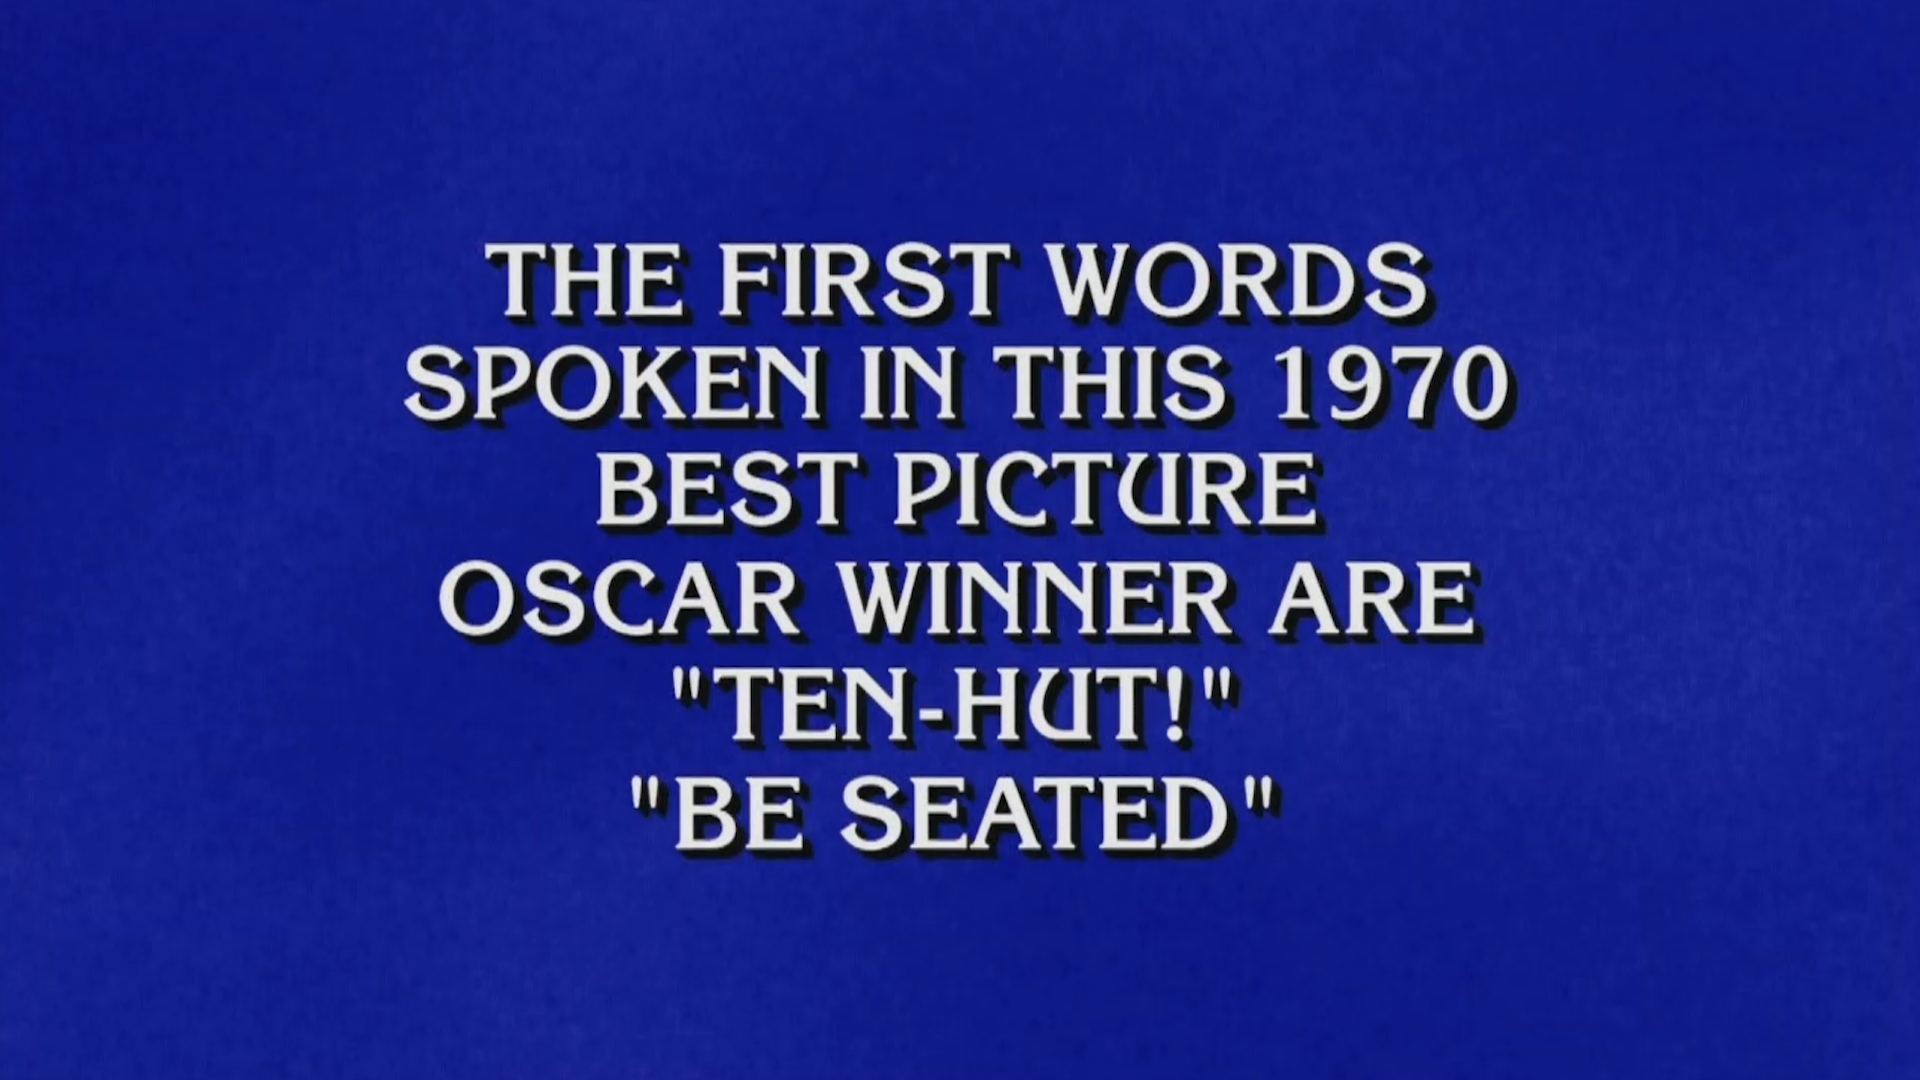 Final Jeopardy! answer was wrong according to many fans